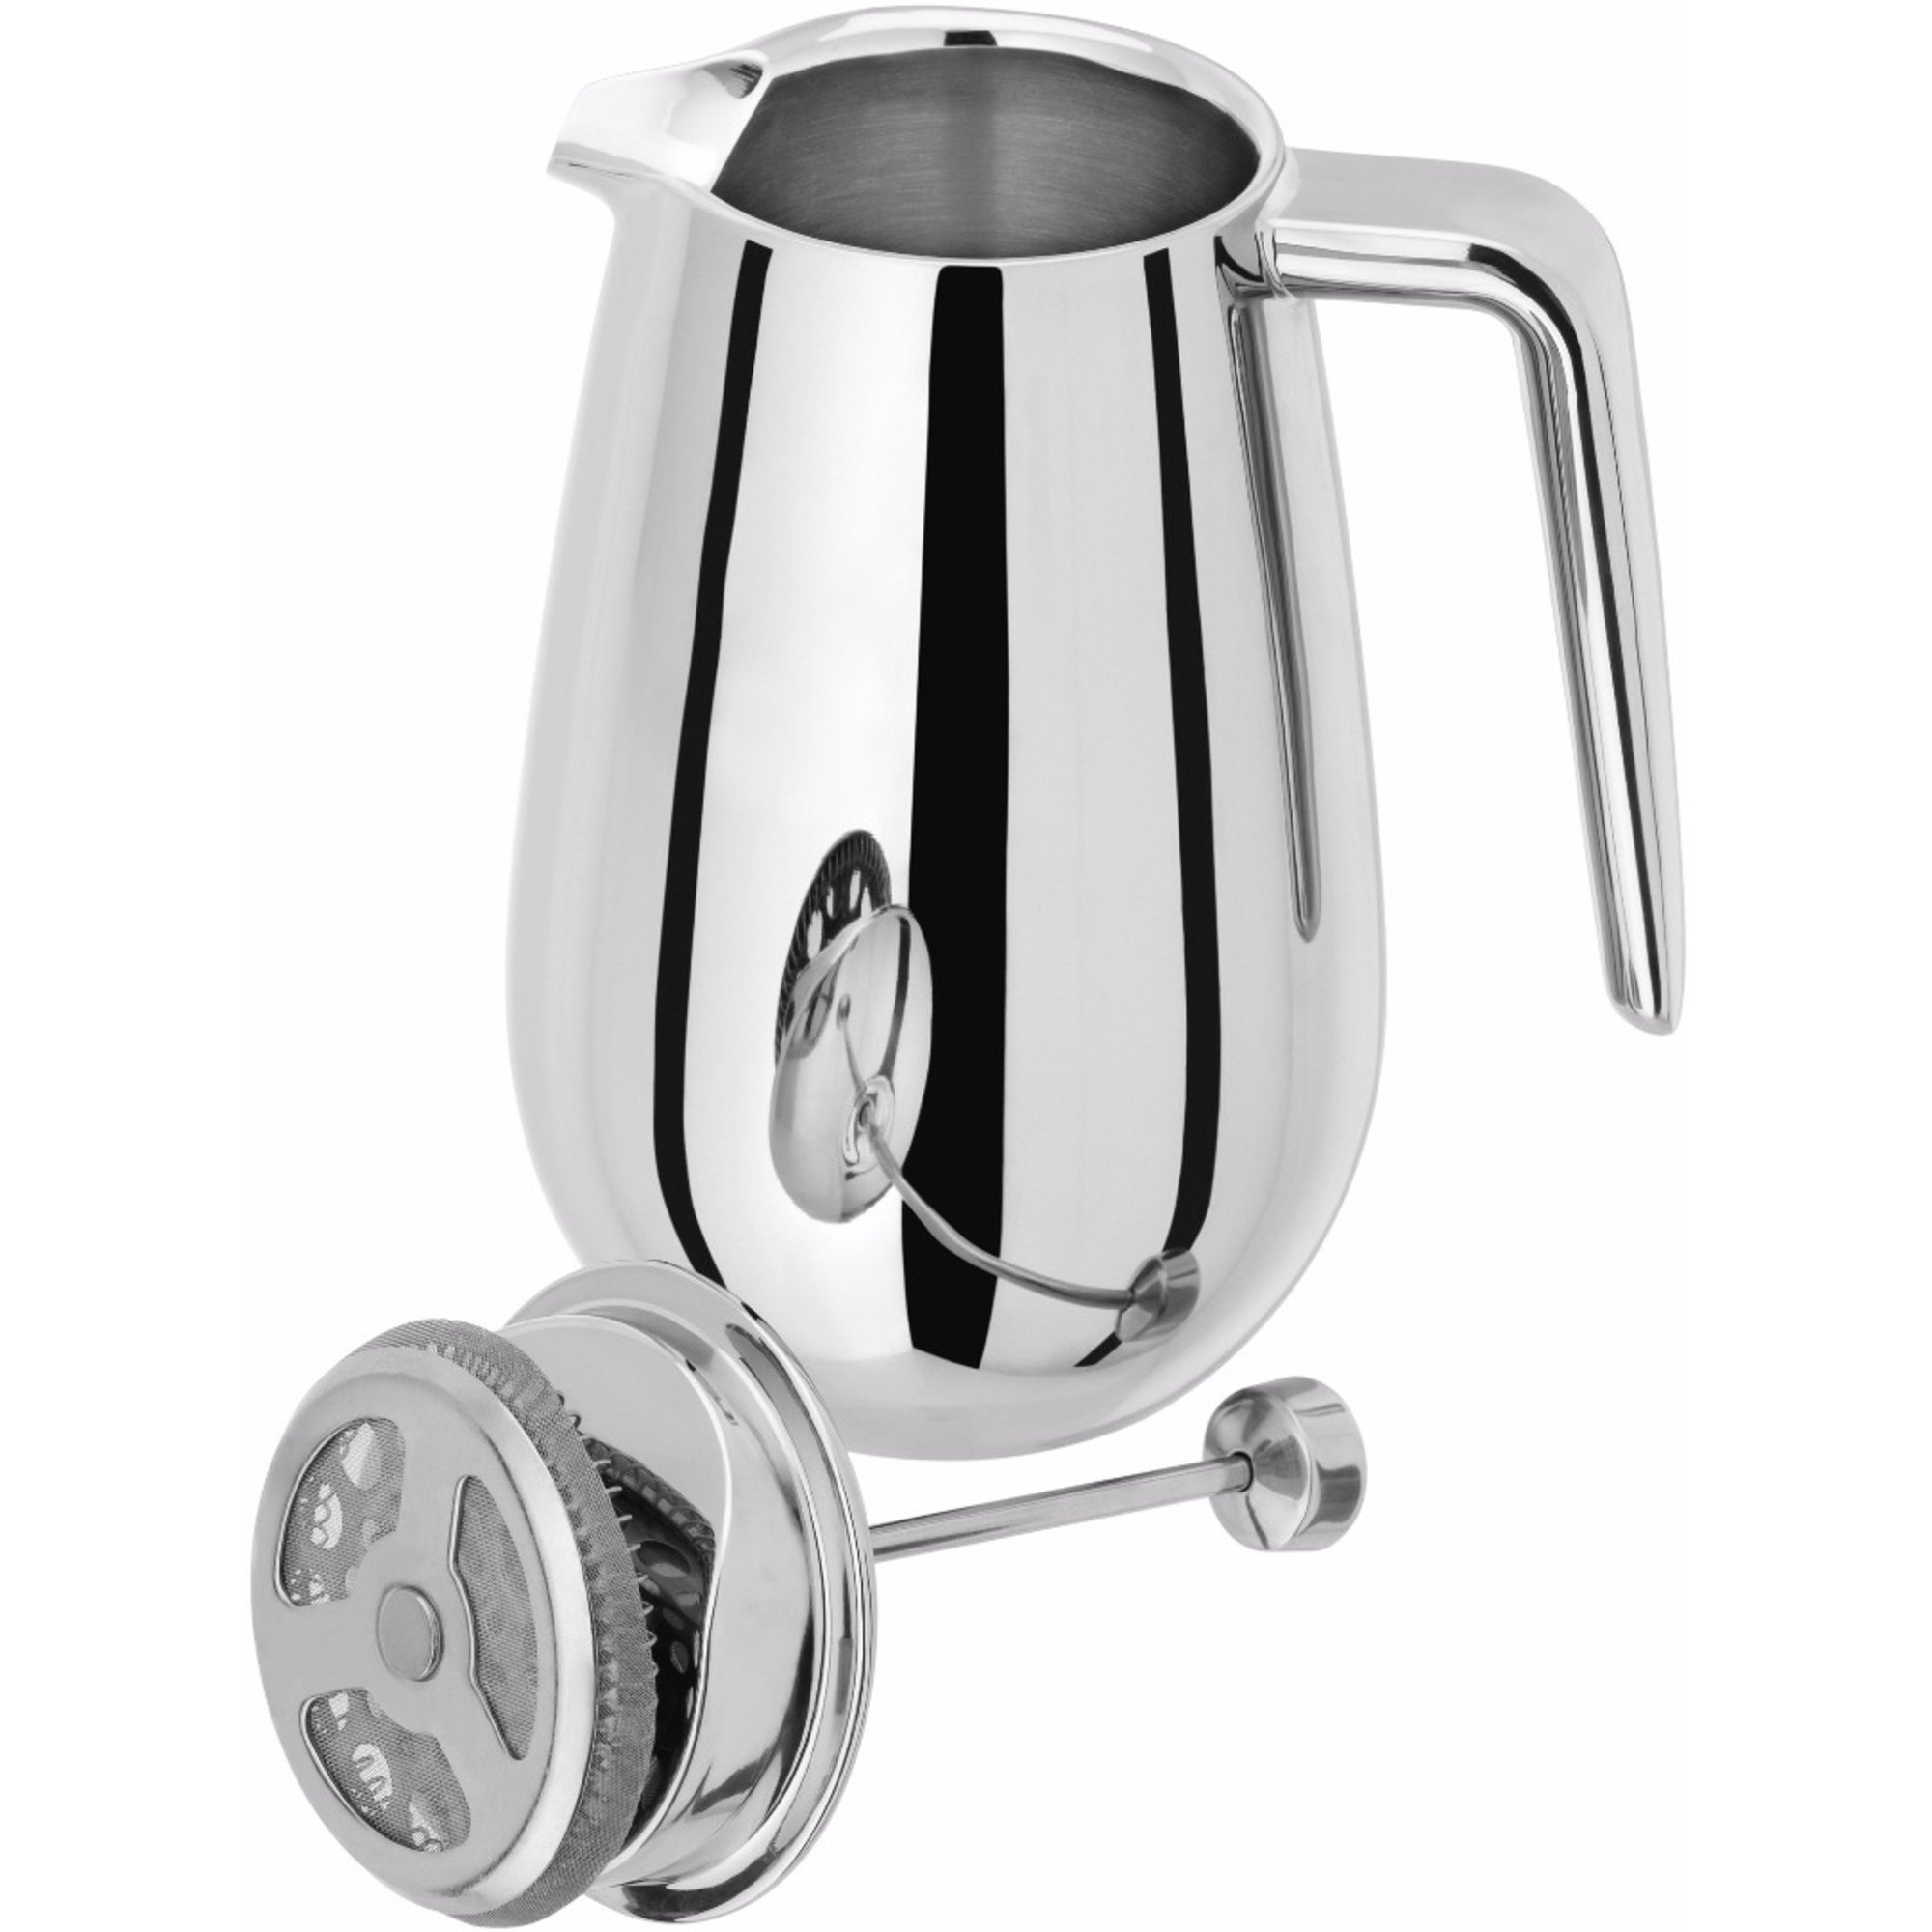 Horwood Cafetiere 3 cup Doublewall